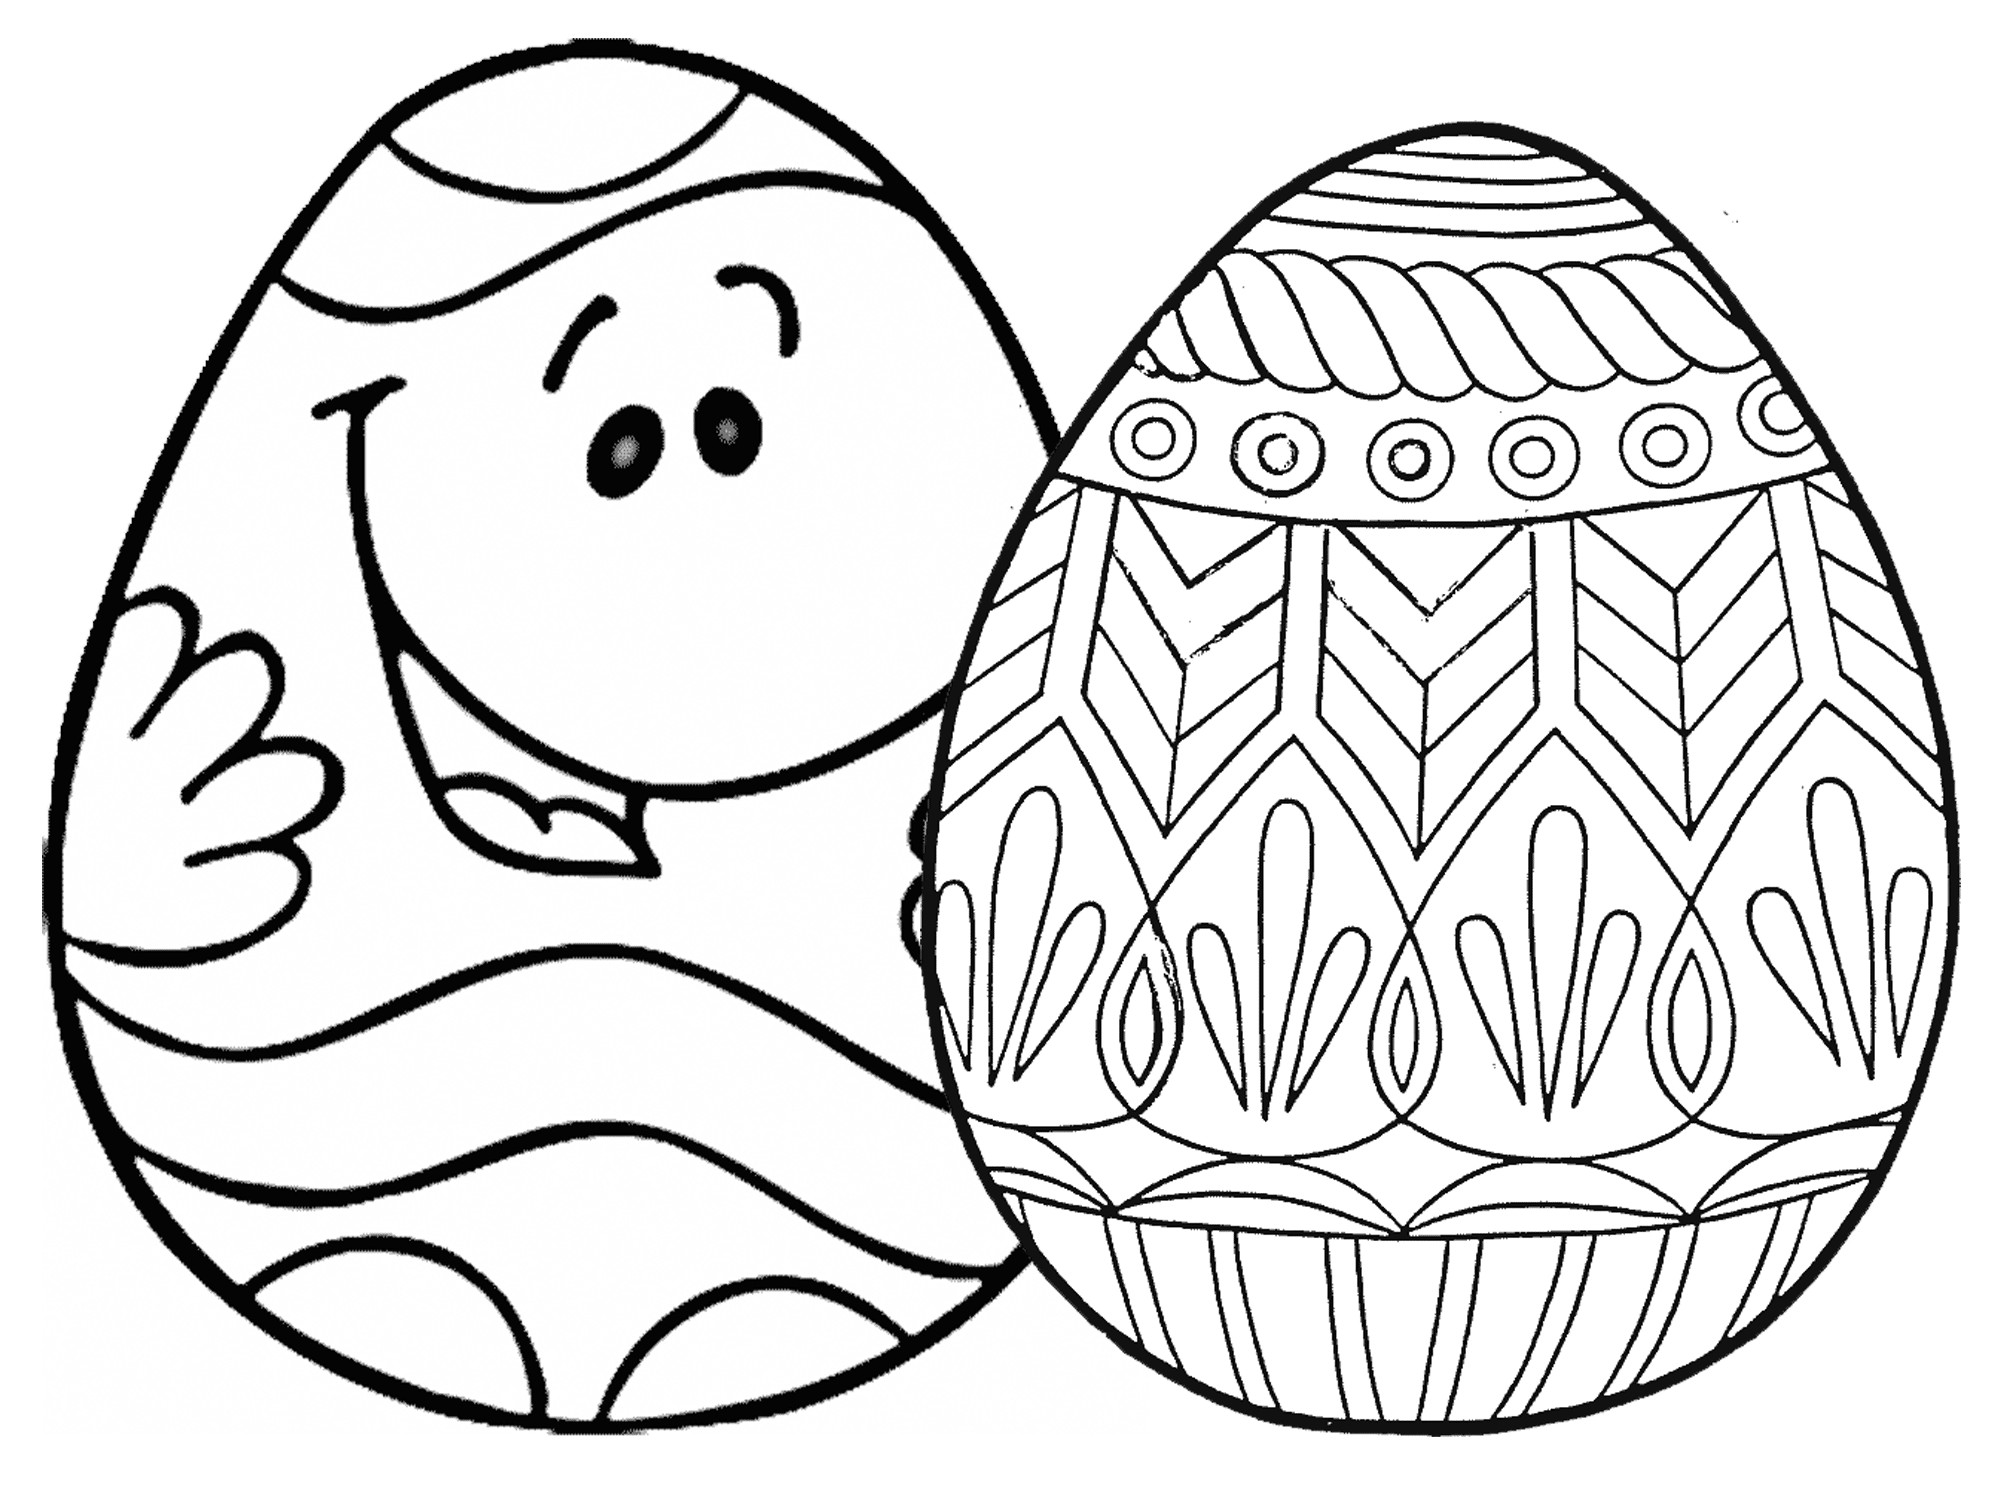 2000x1500 Valid Russian Easter Eggs Coloring Pages New Free Printable